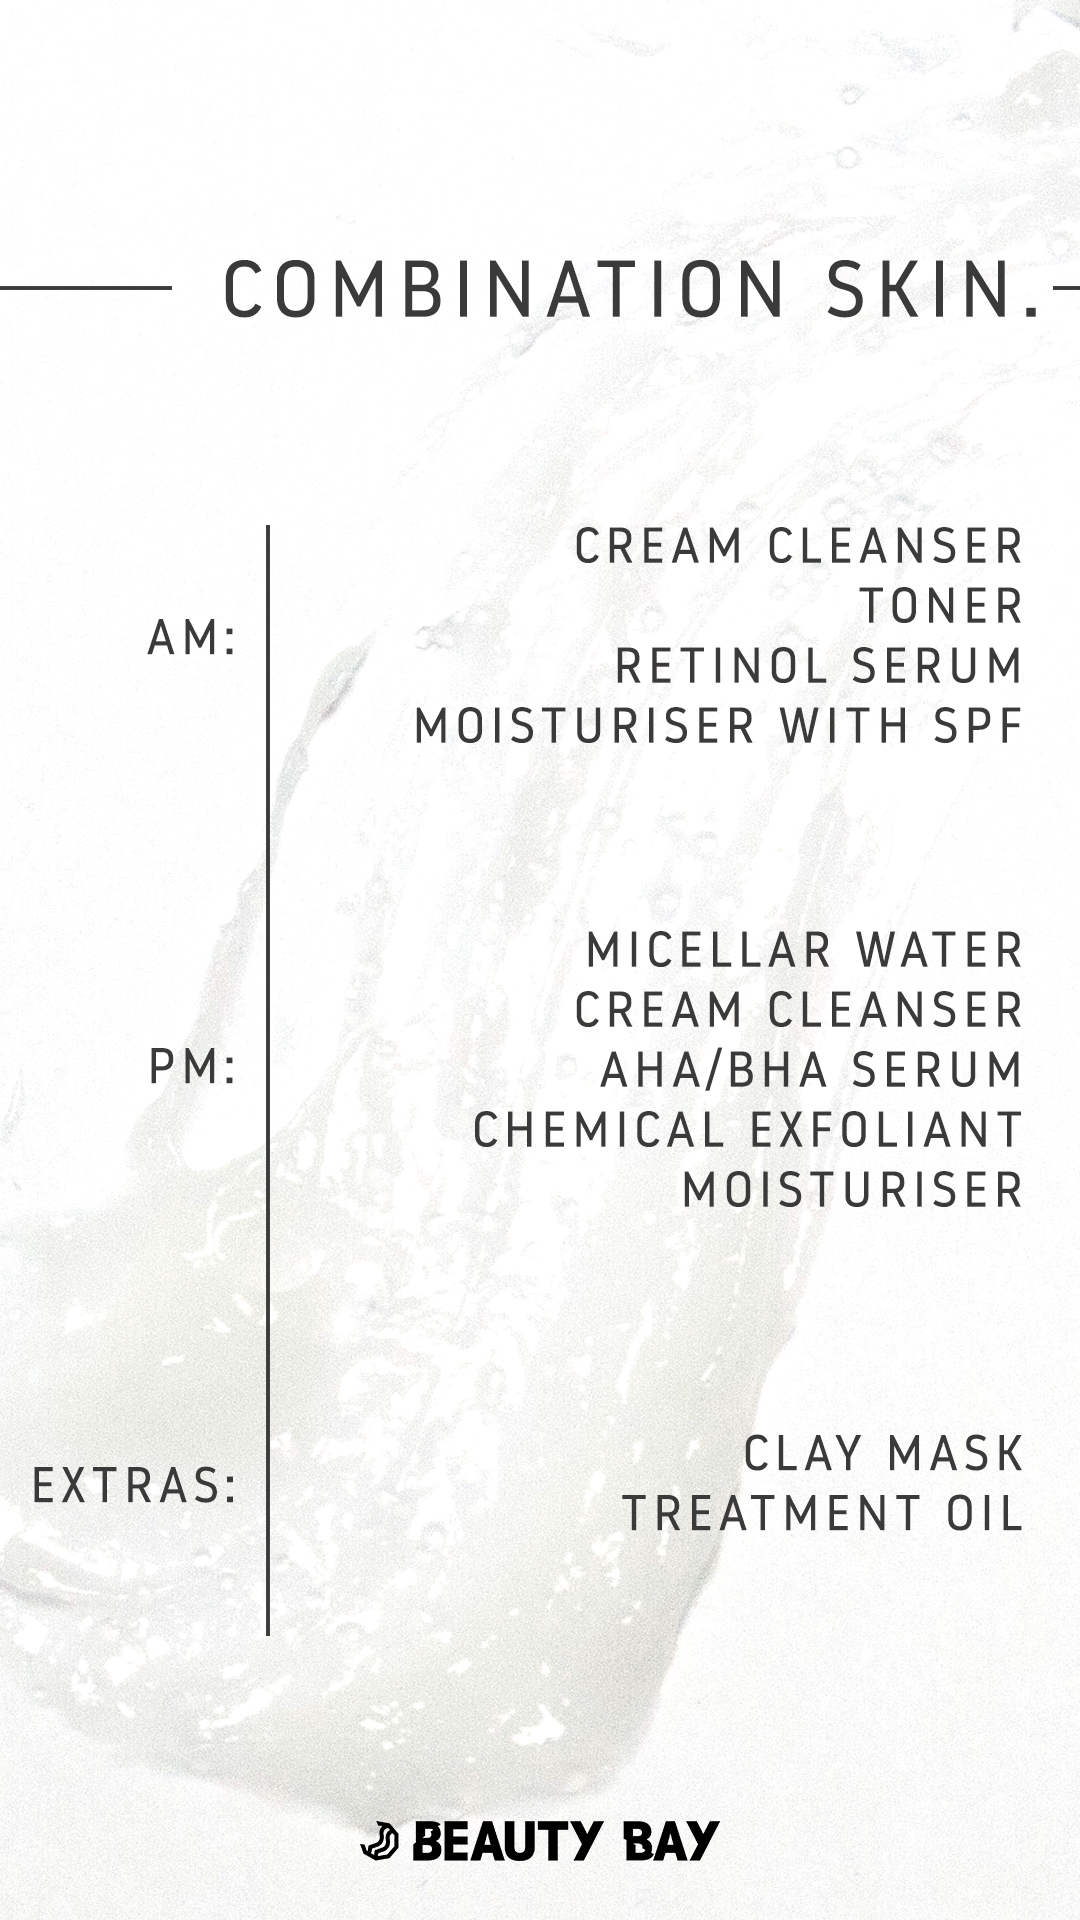 How To Build A Skincare Routine For Combination Skin - Beauty Bay